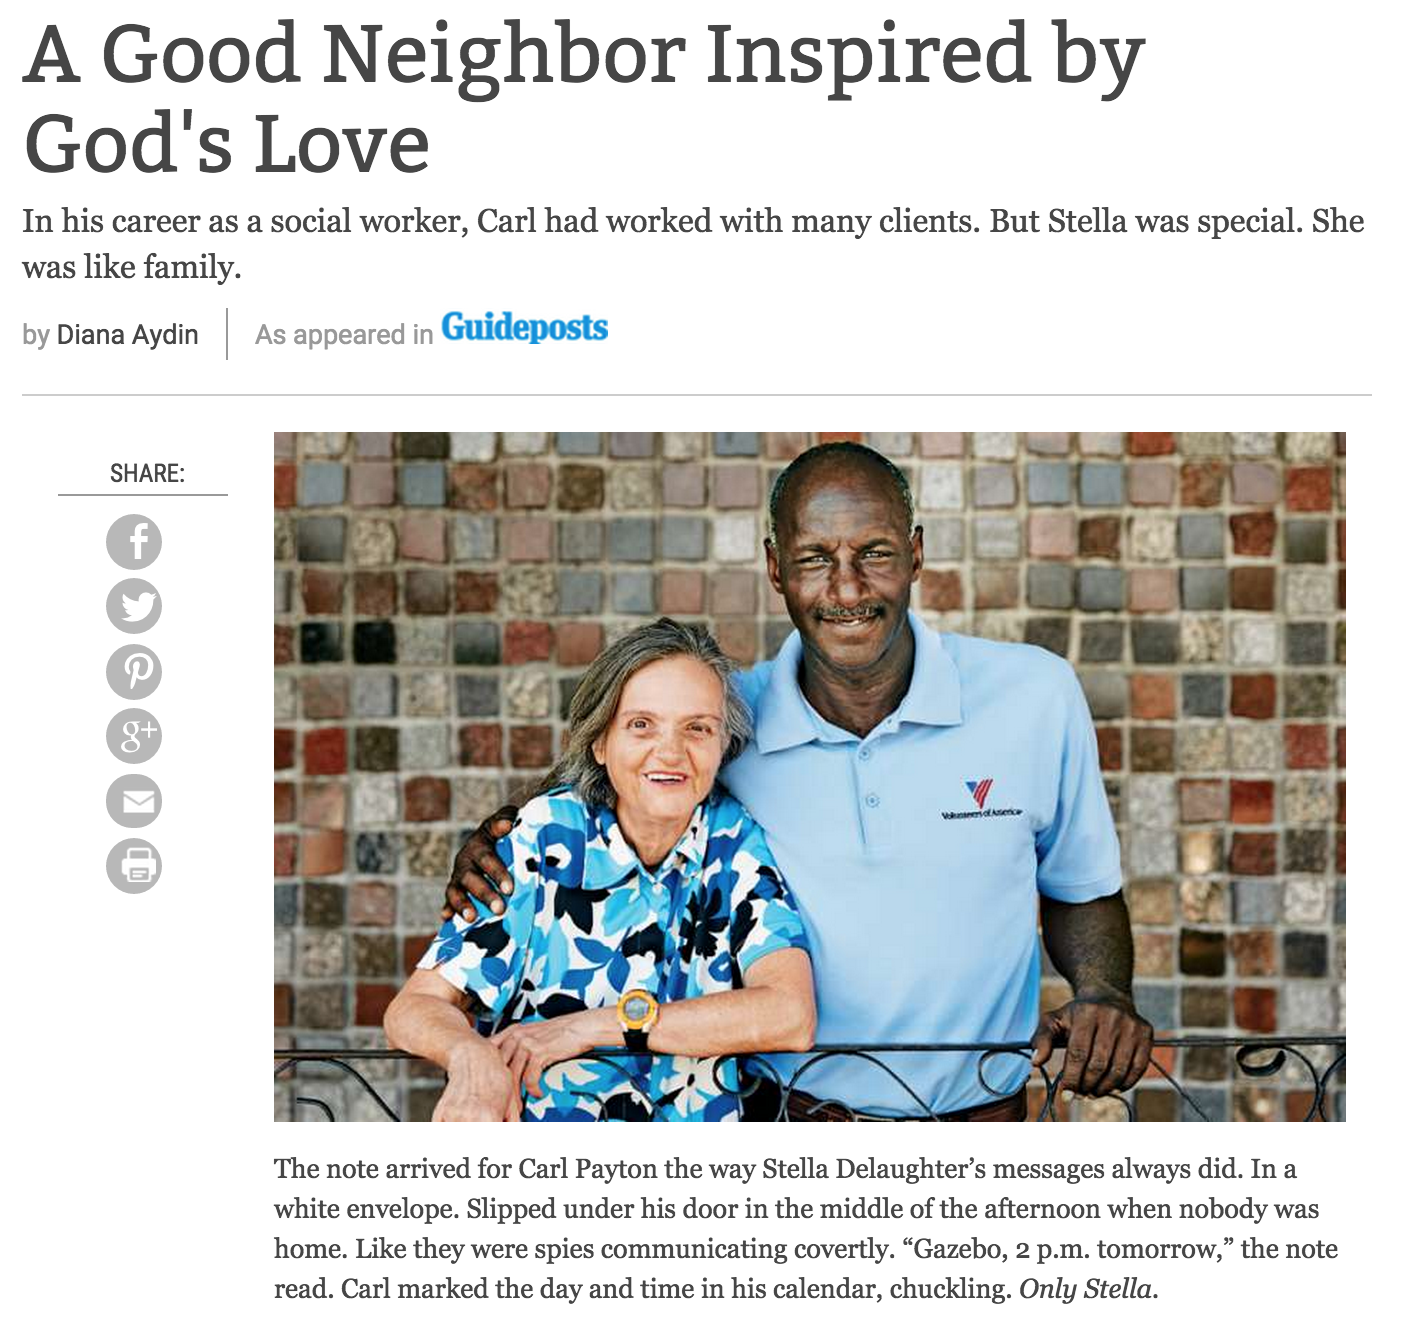 A Good Neighbor Inspired by God's Love